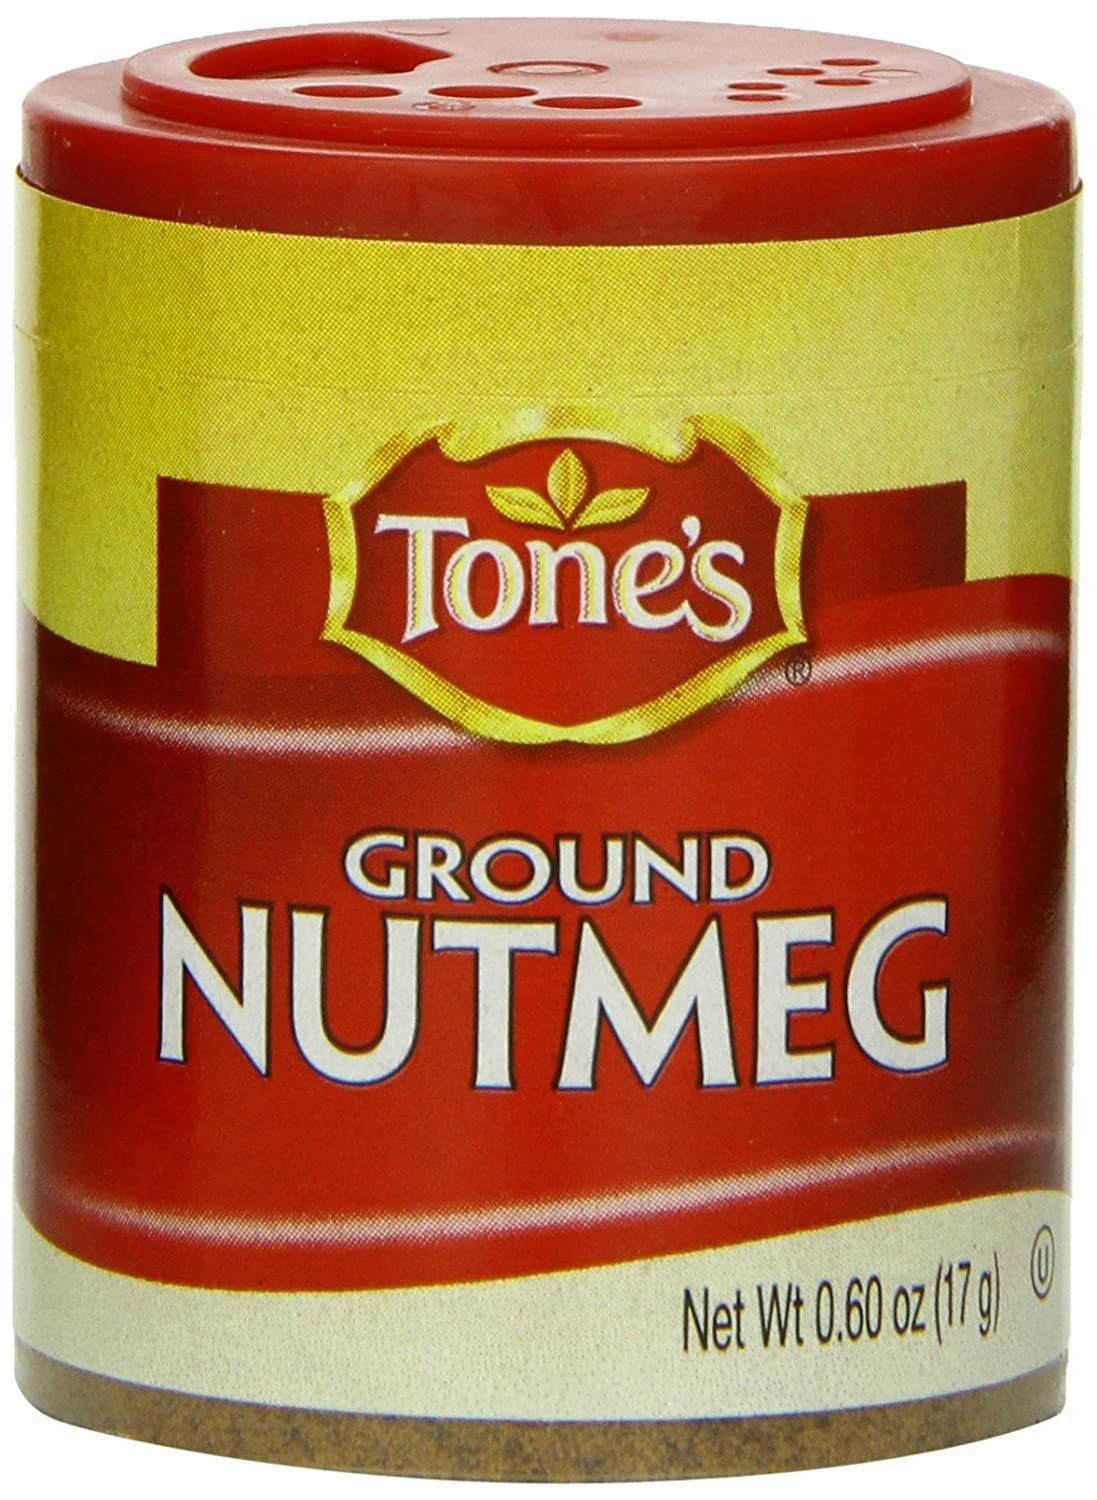 Tone's Mini's Nutmeg Ground Limited time sale 0.60 Selling Ounce 6 of Pack